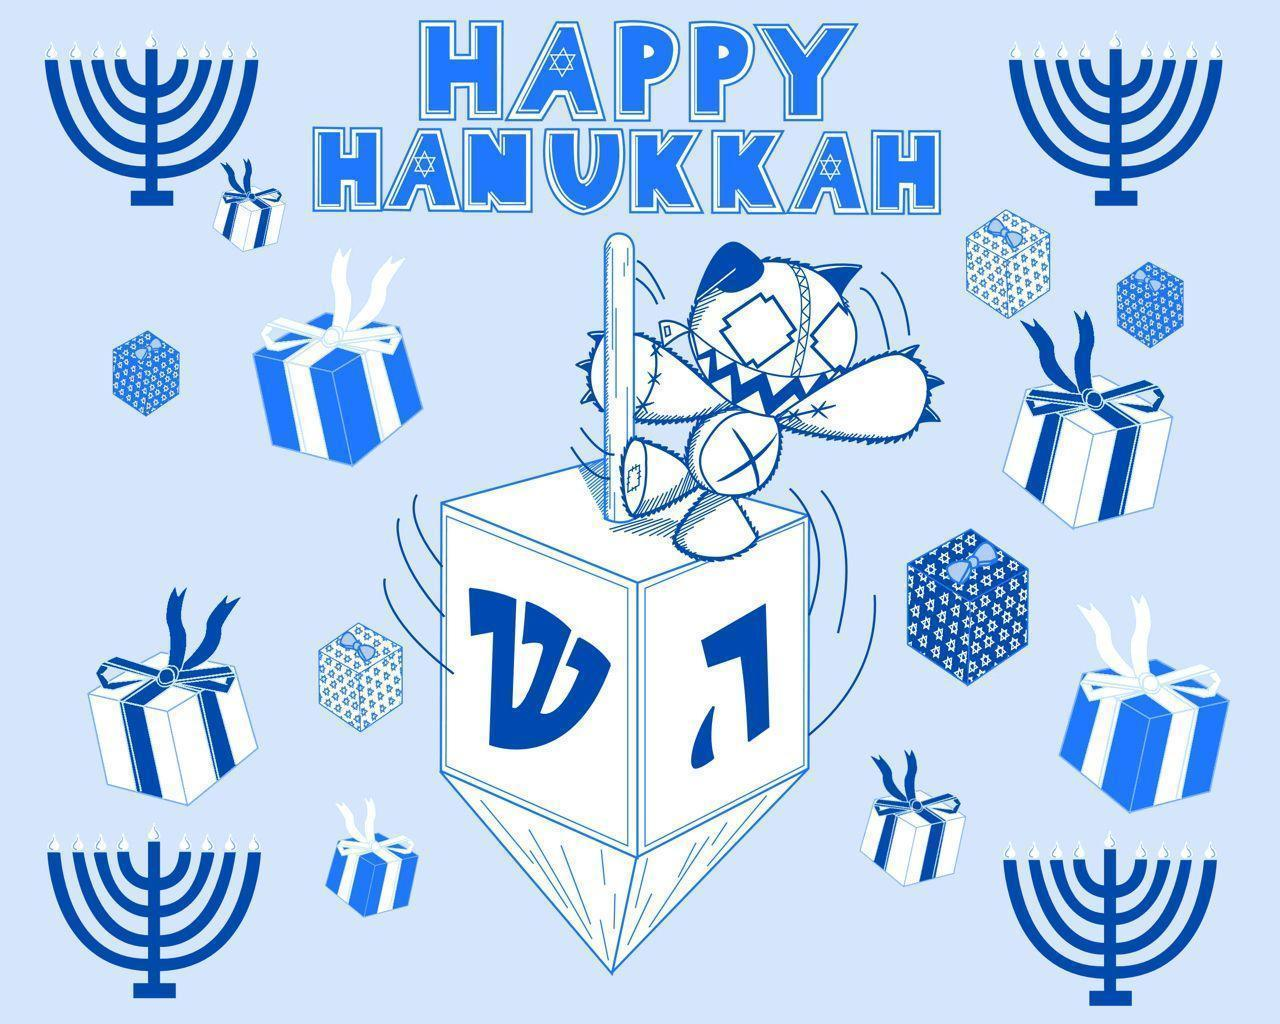 Tashy Hanukkah Wallpaper by Waddle-J on DeviantArt